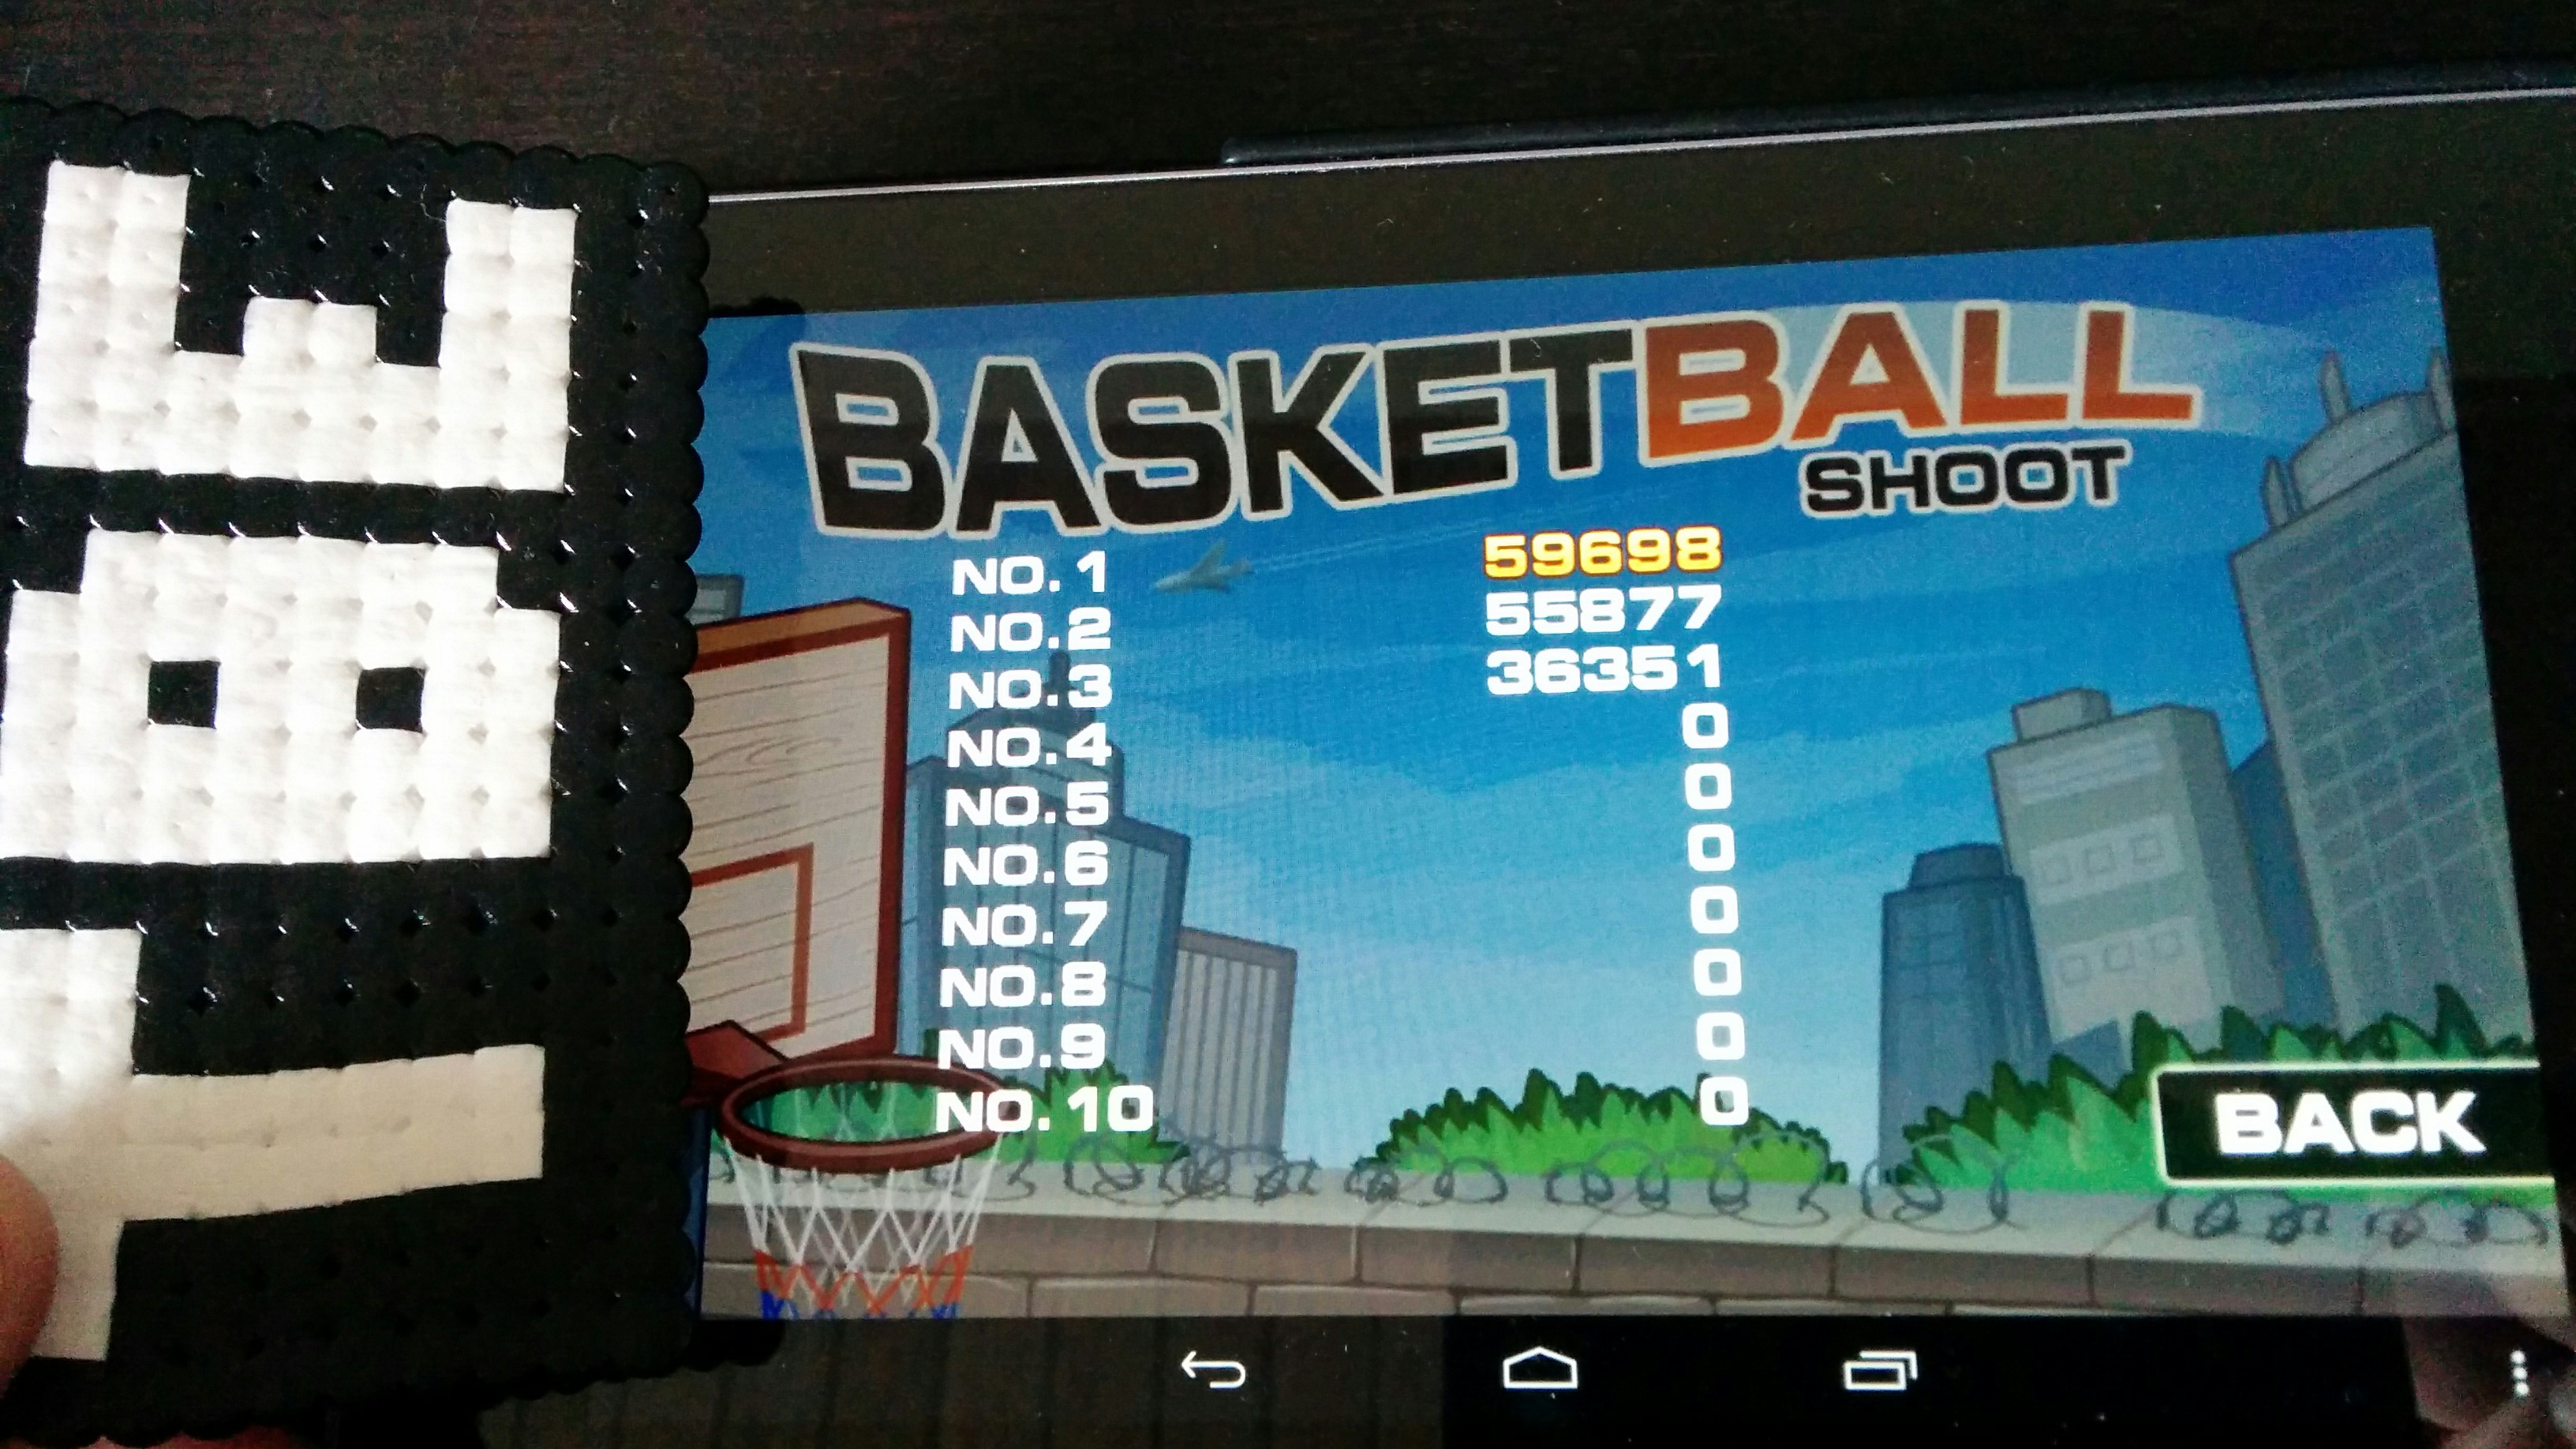 Sixx: Basketball Shoot [Sunfoer Mobile] (Android) 59,698 points on 2014-09-08 08:35:25